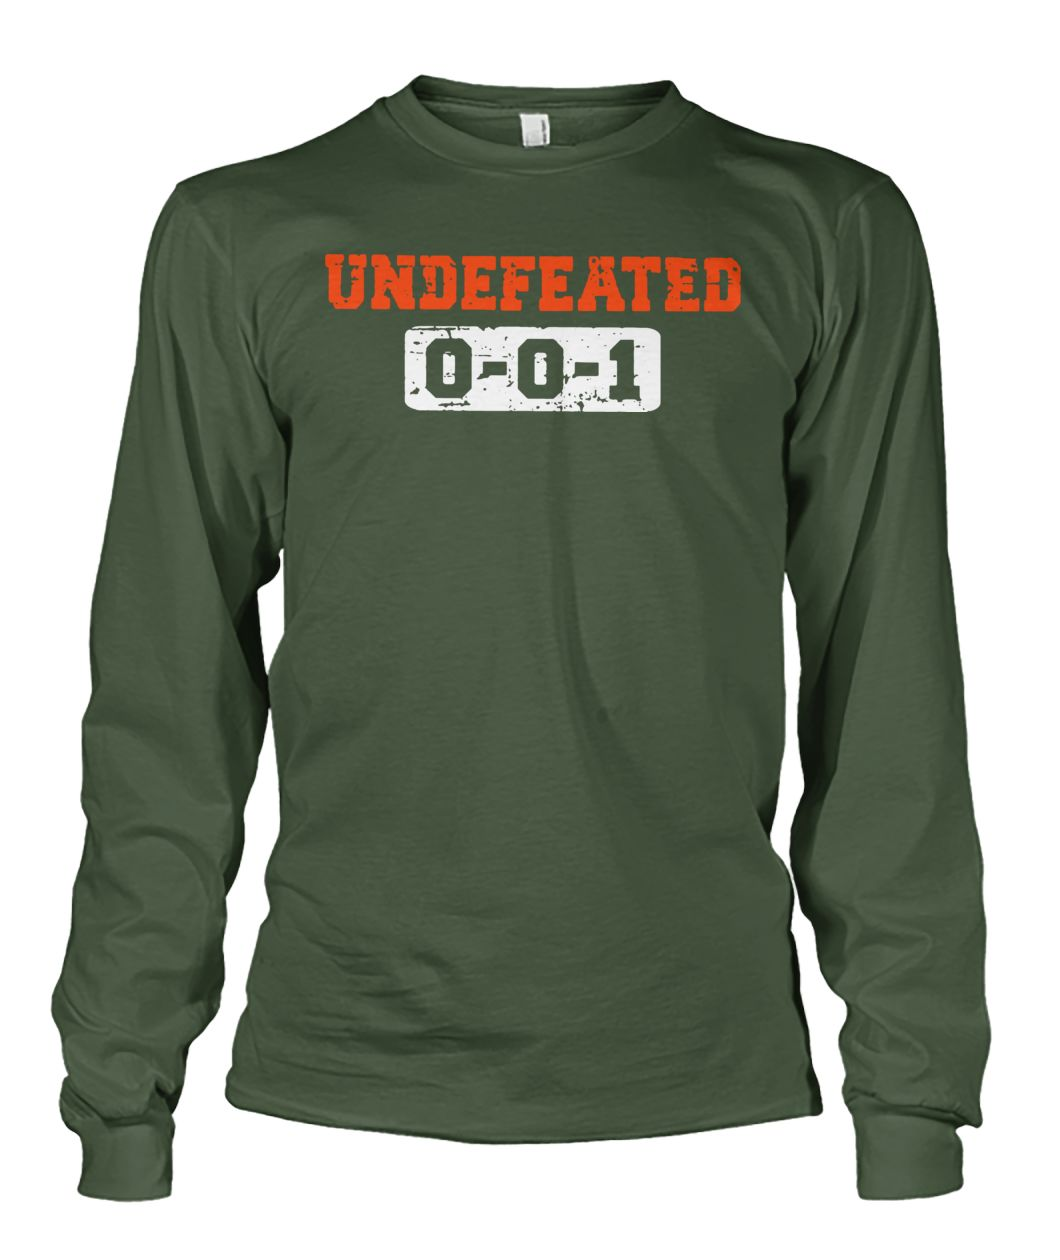 Cleveland browns undefeated 0-0-1 unisex long sleeve